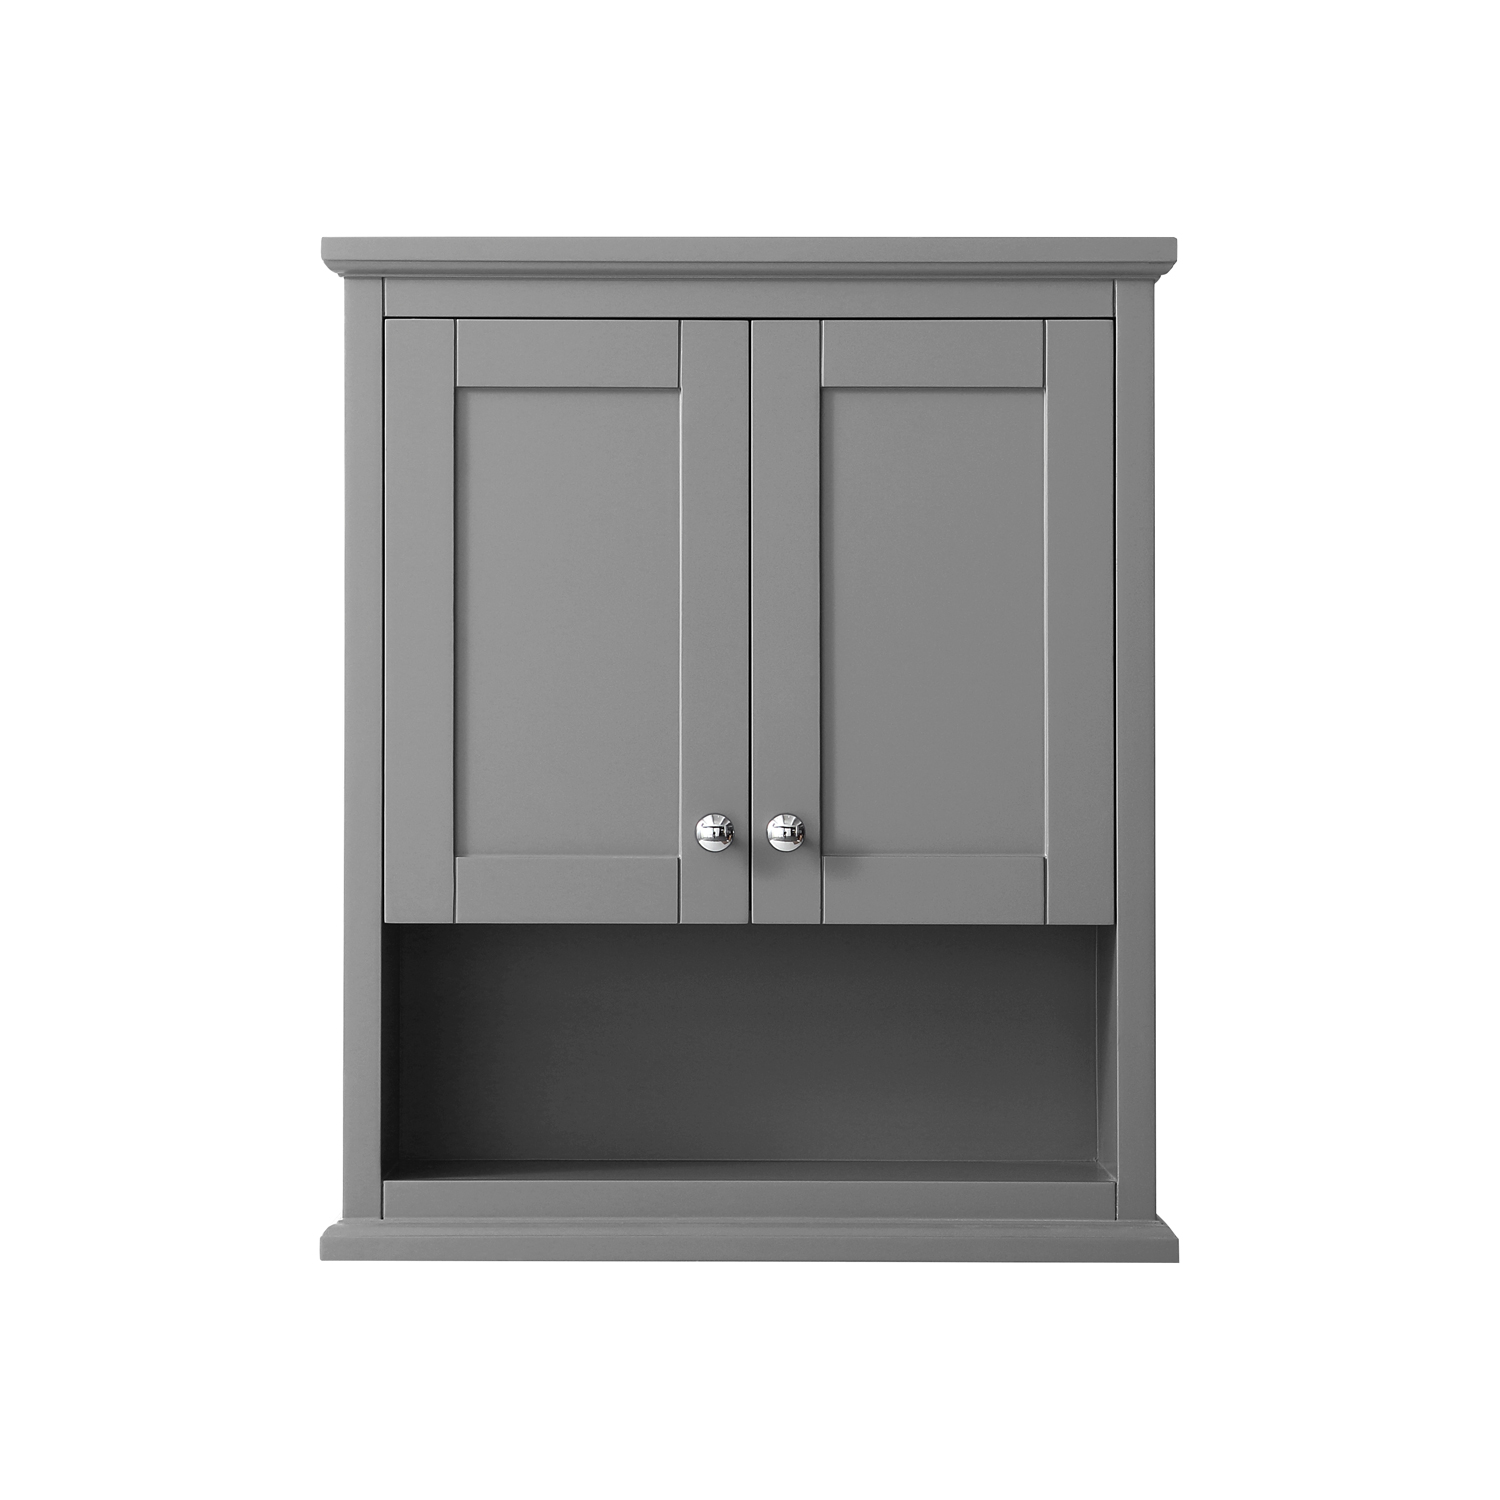 stunning bathroom shelves over toilet storage | Avery Over-Toilet Wall Cabinet by Wyndham Collection ...